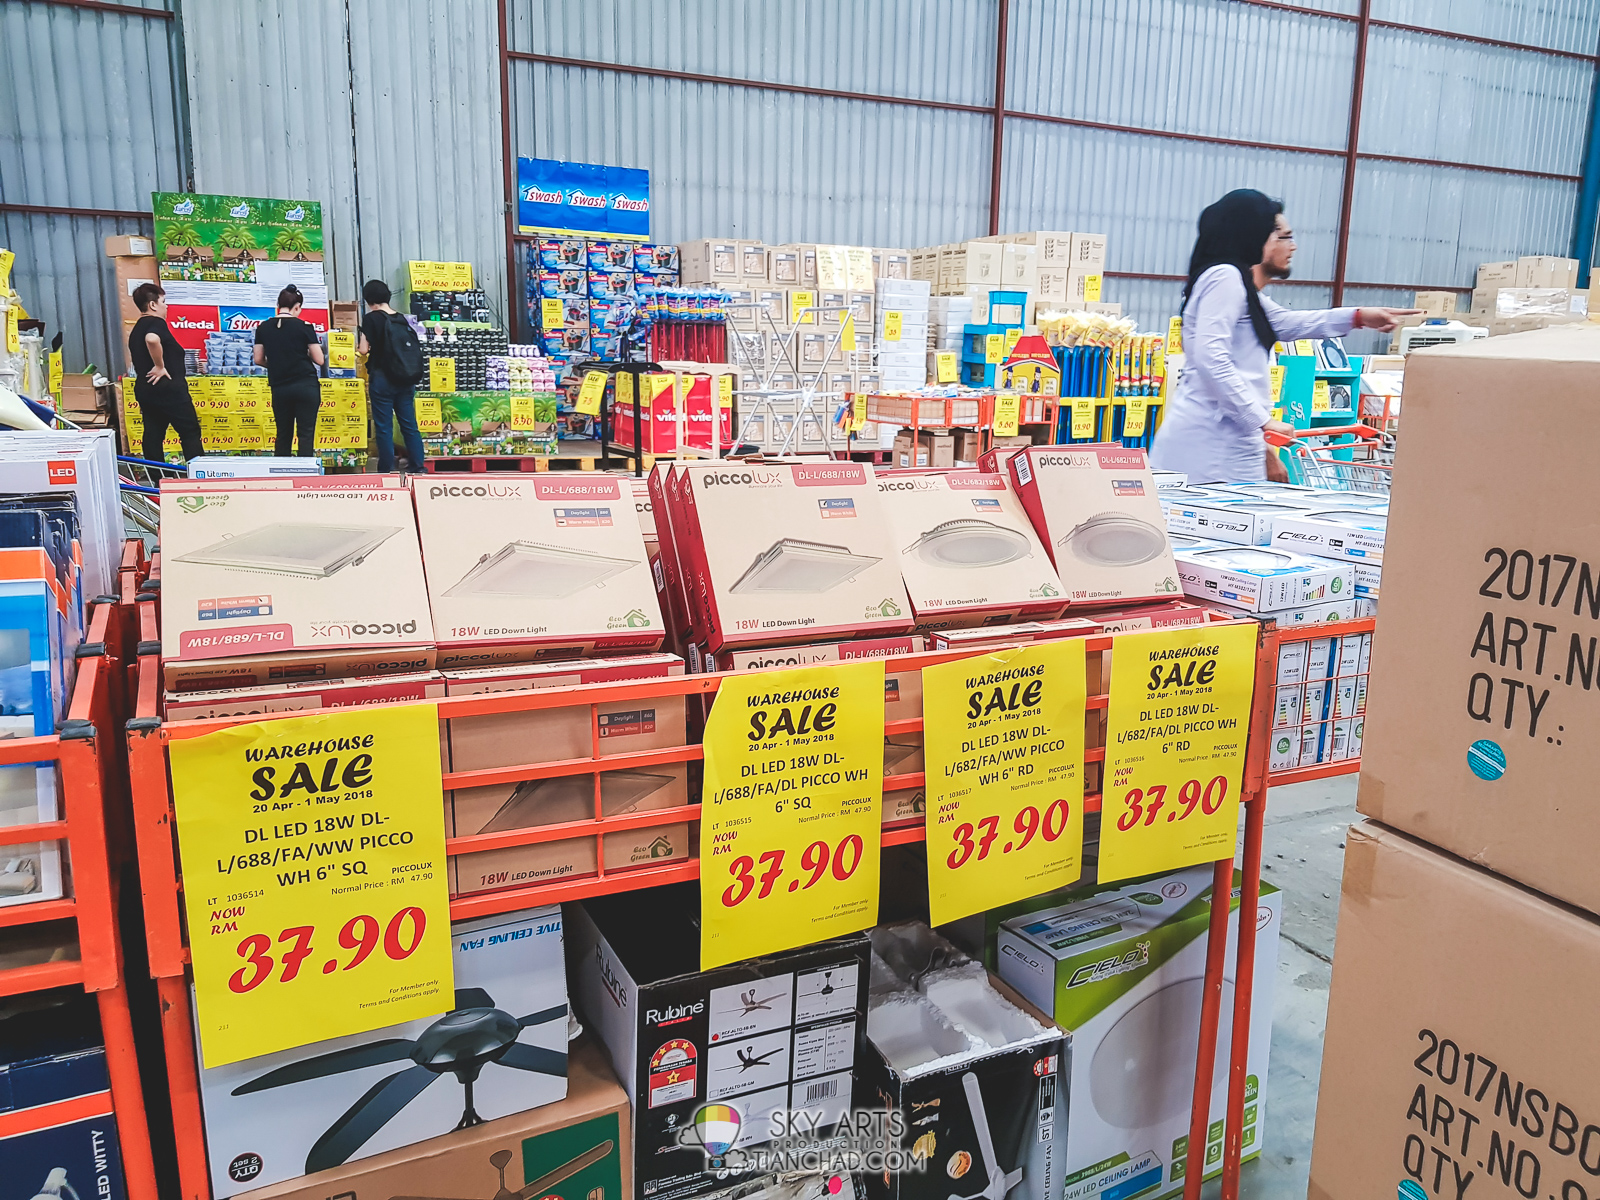 a3963a8c70ee4 HOMEPRO WAREHOUSE SALE Malaysia HomePro Jualan Gudang 2018 in Puchong -  Free ice-cream